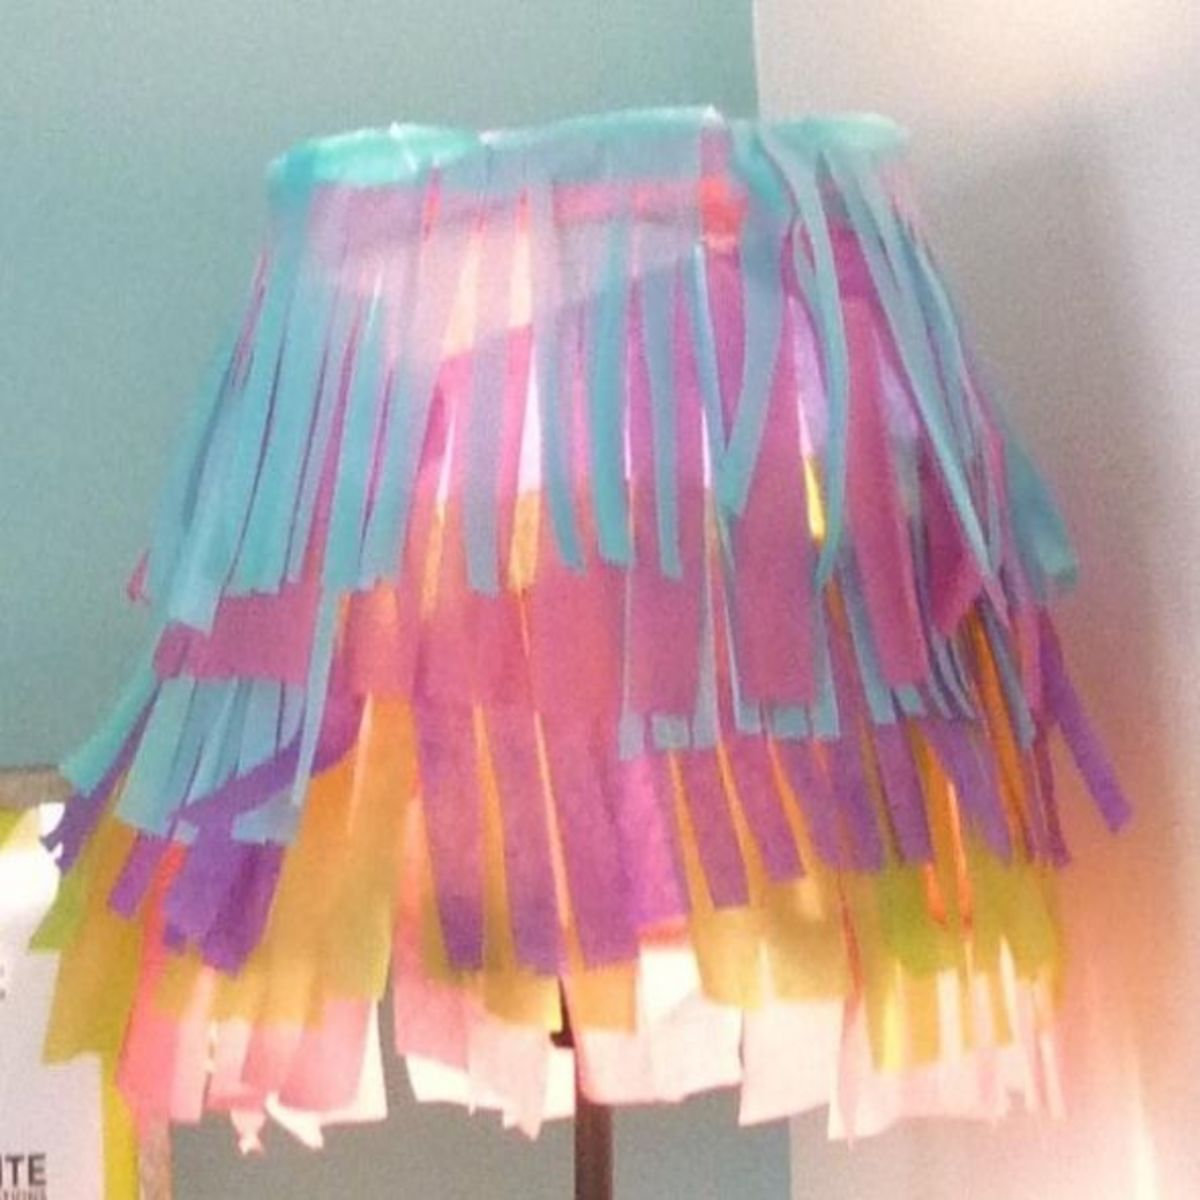 Embellish a white lampshade with rows of colored tissue paper cut into fringed lengths.  Layer the tissue paper to achieve a petticoat effect.